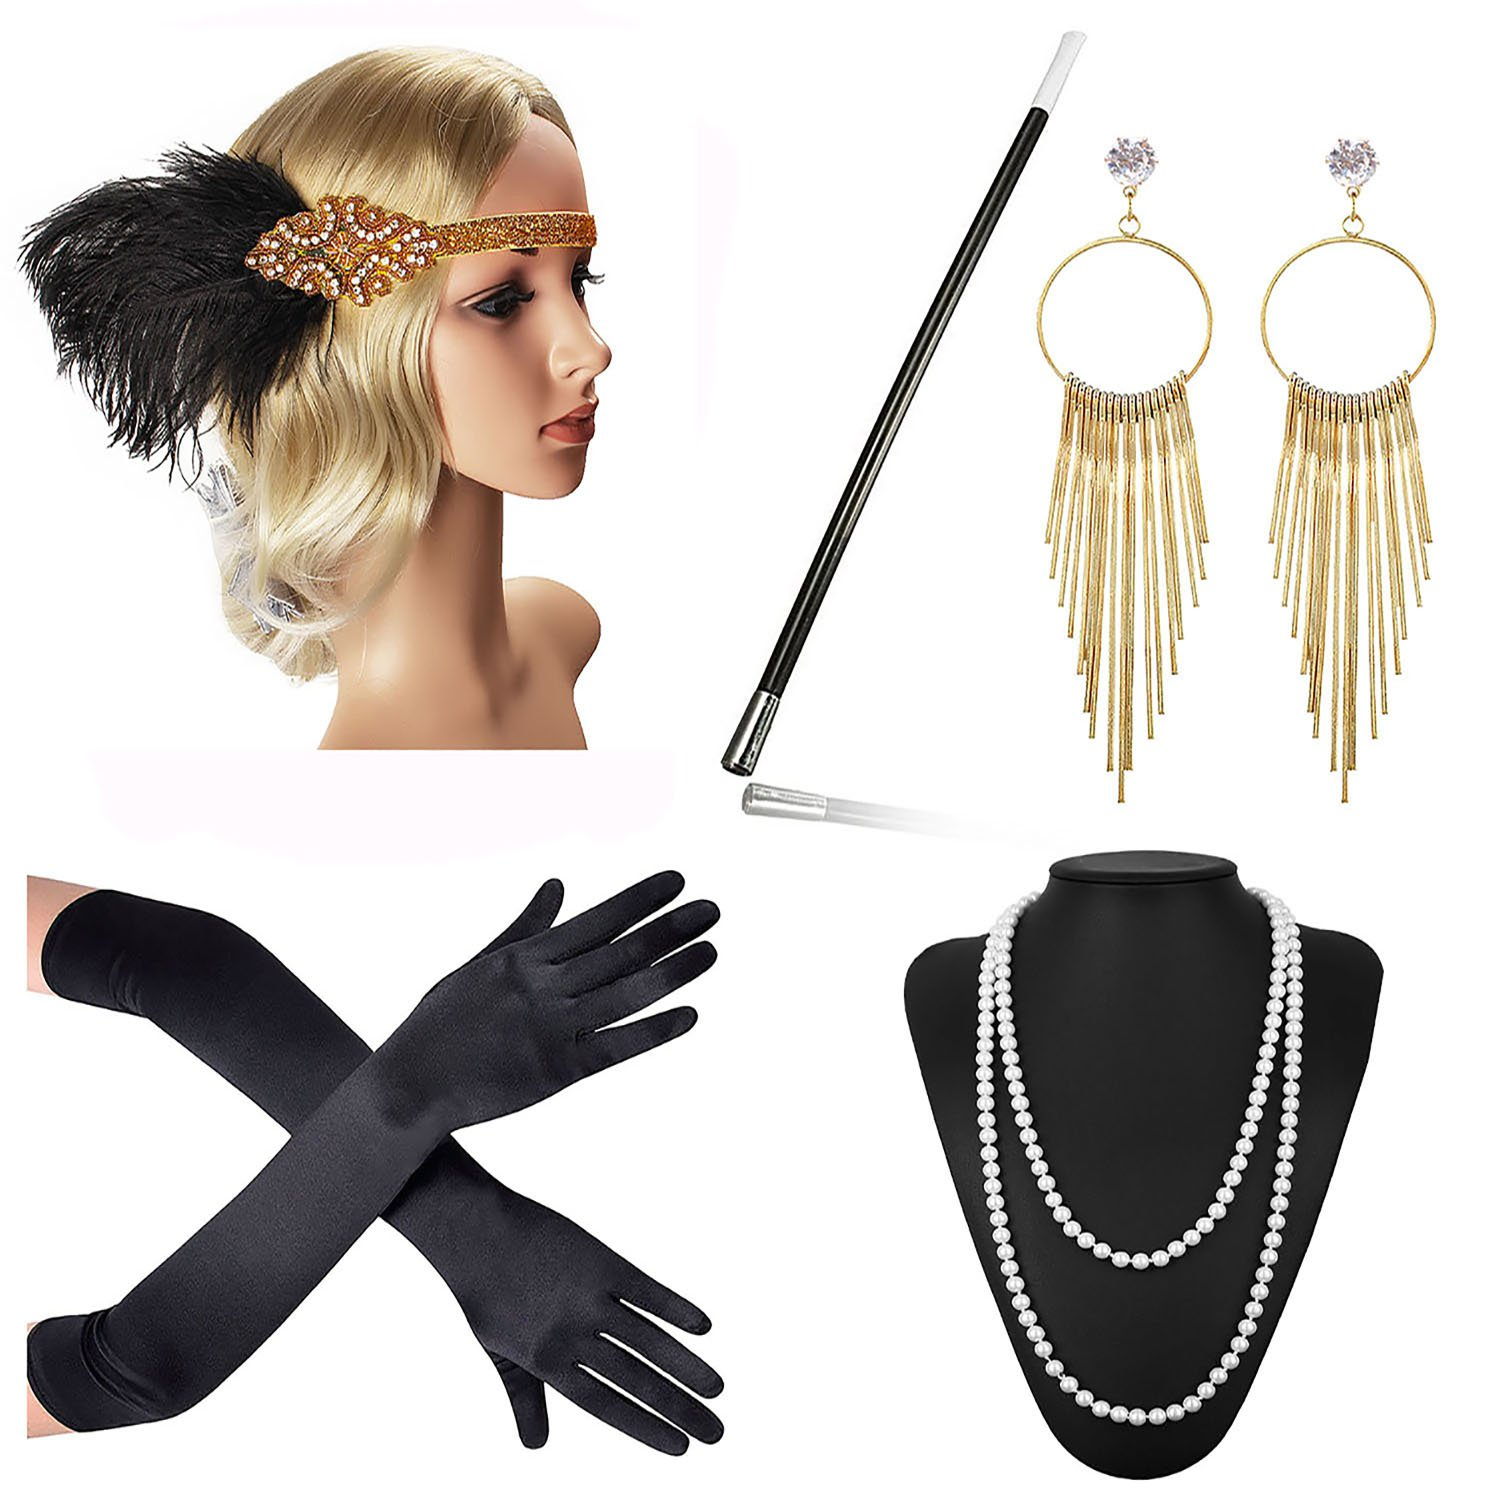 Beelittle 1920s Accessories Headband Earrings Necklace Gloves Cigarette Holder (F4)